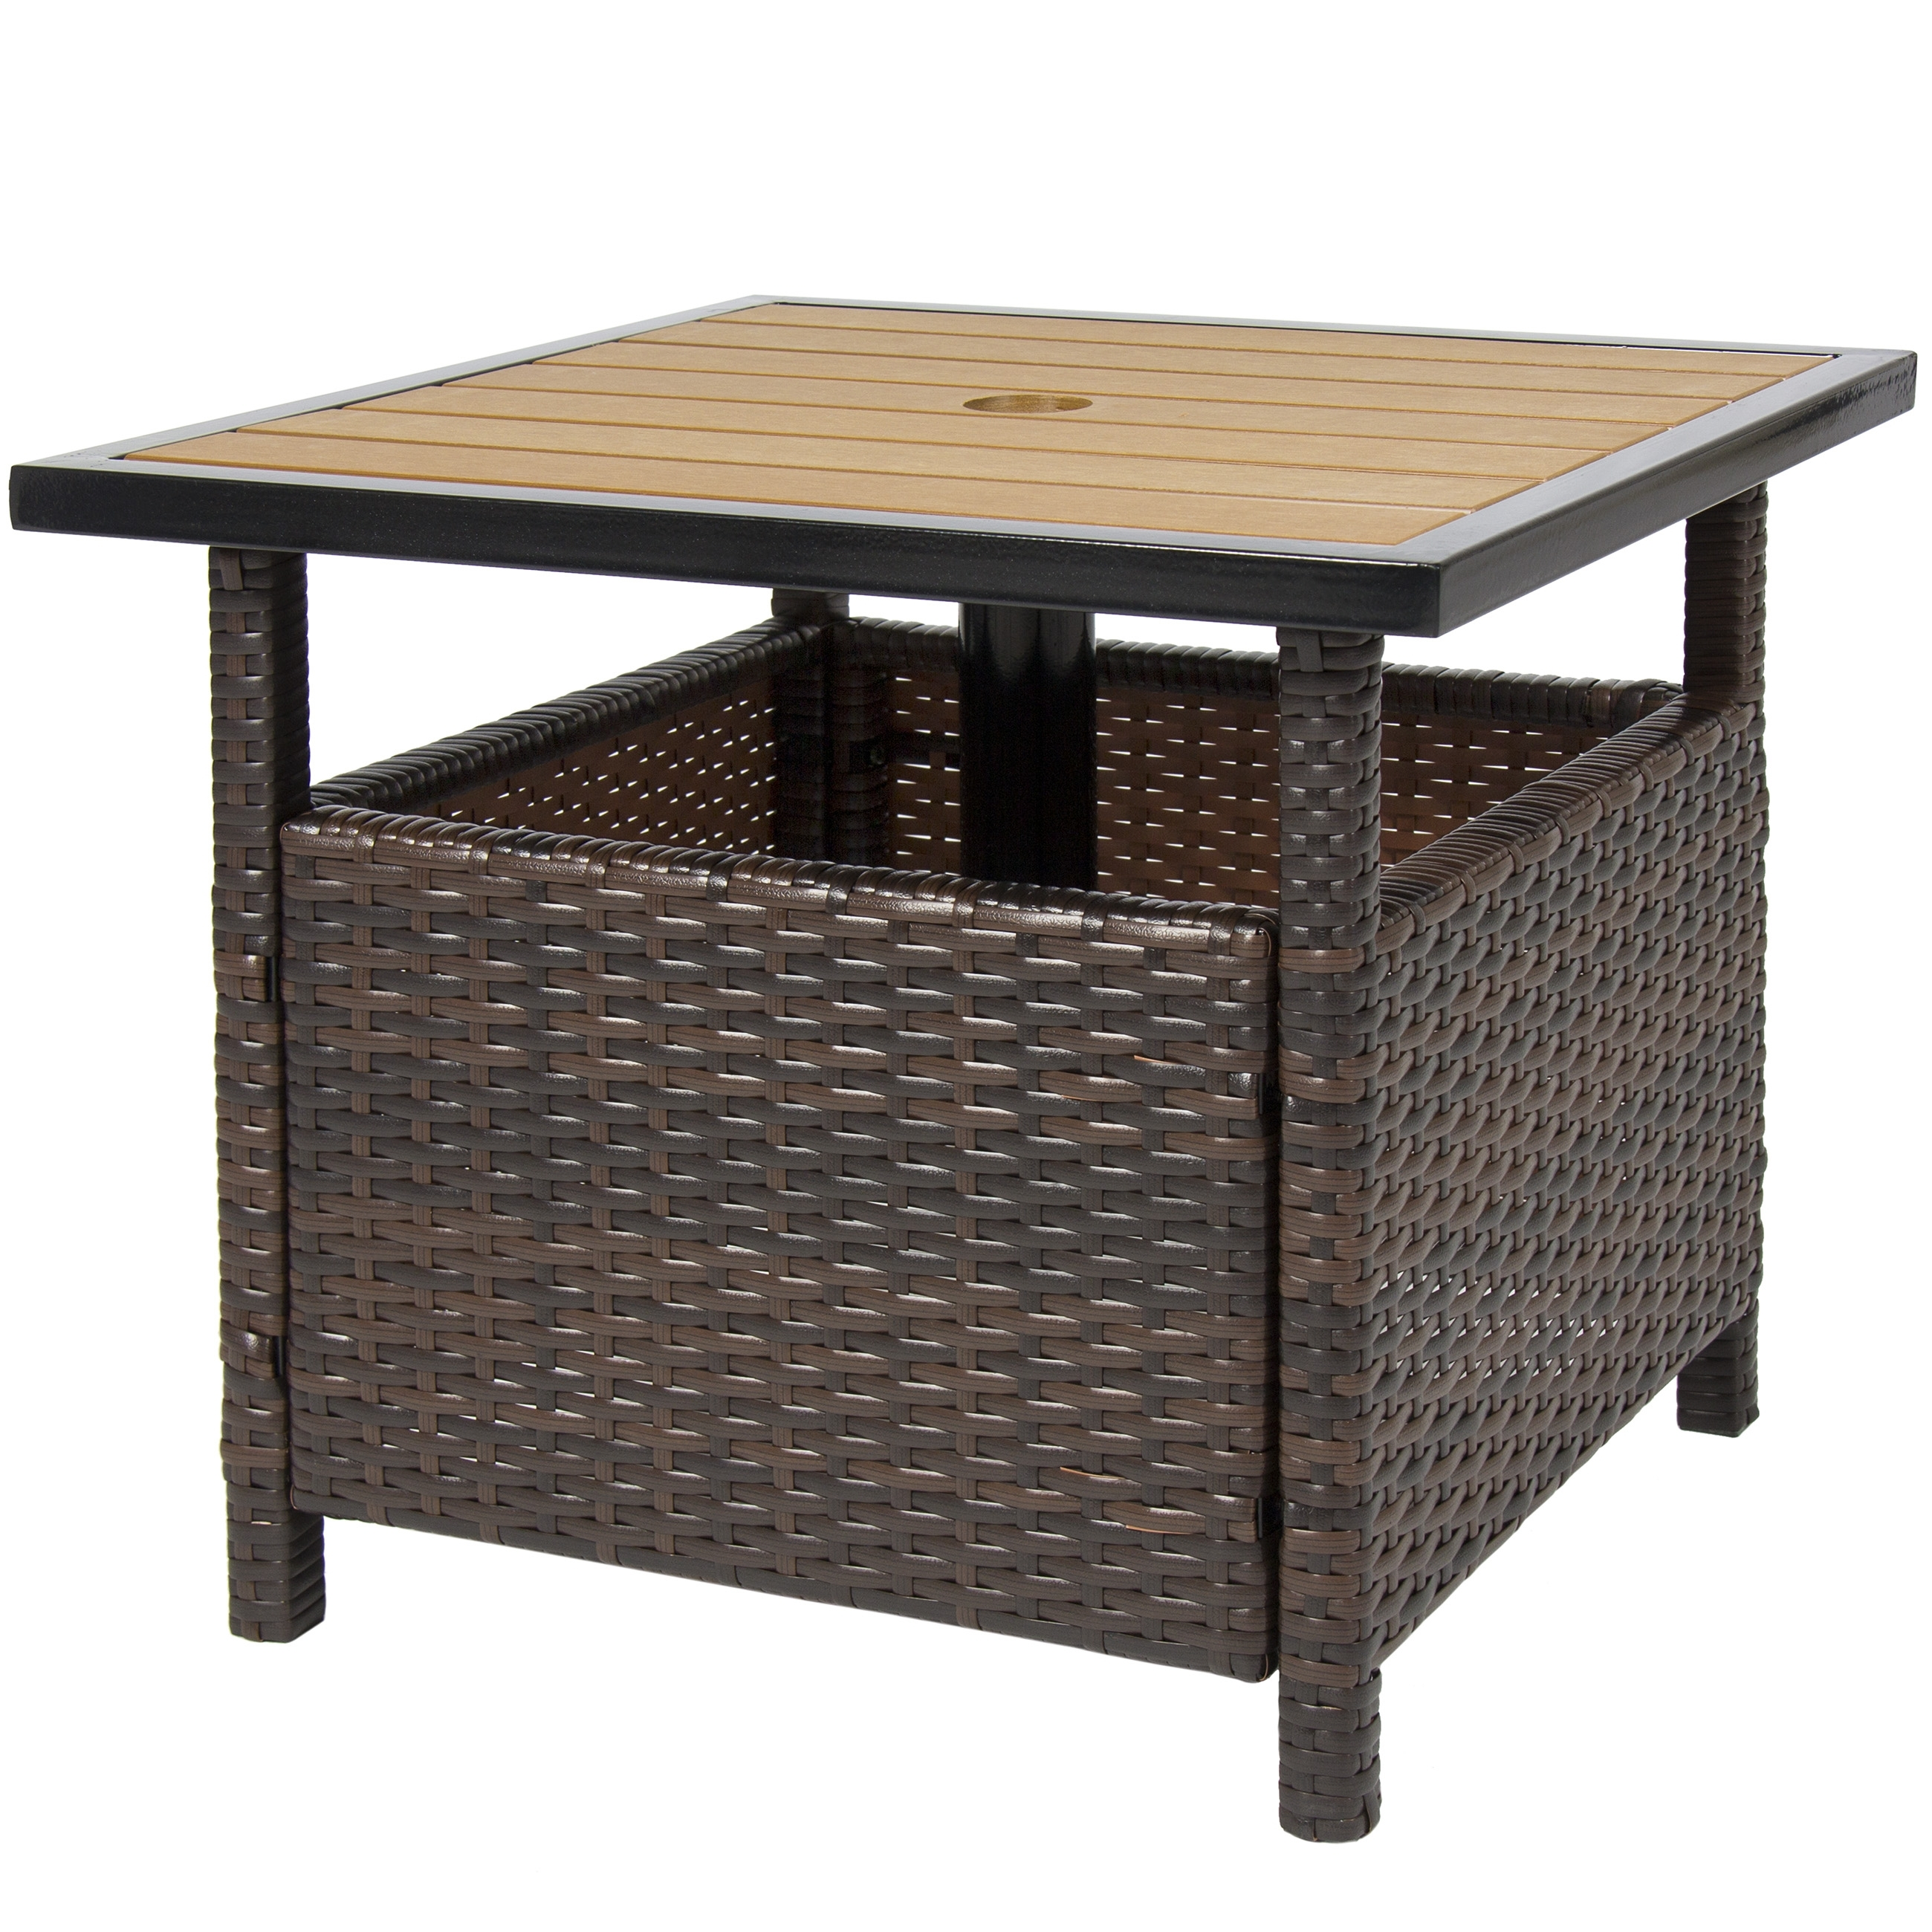 Most Recently Released Patio Umbrella Stand Side Tables Inside Best Choice Products Outdoor Furniture Wicker Rattan Patio Umbrella (View 9 of 20)